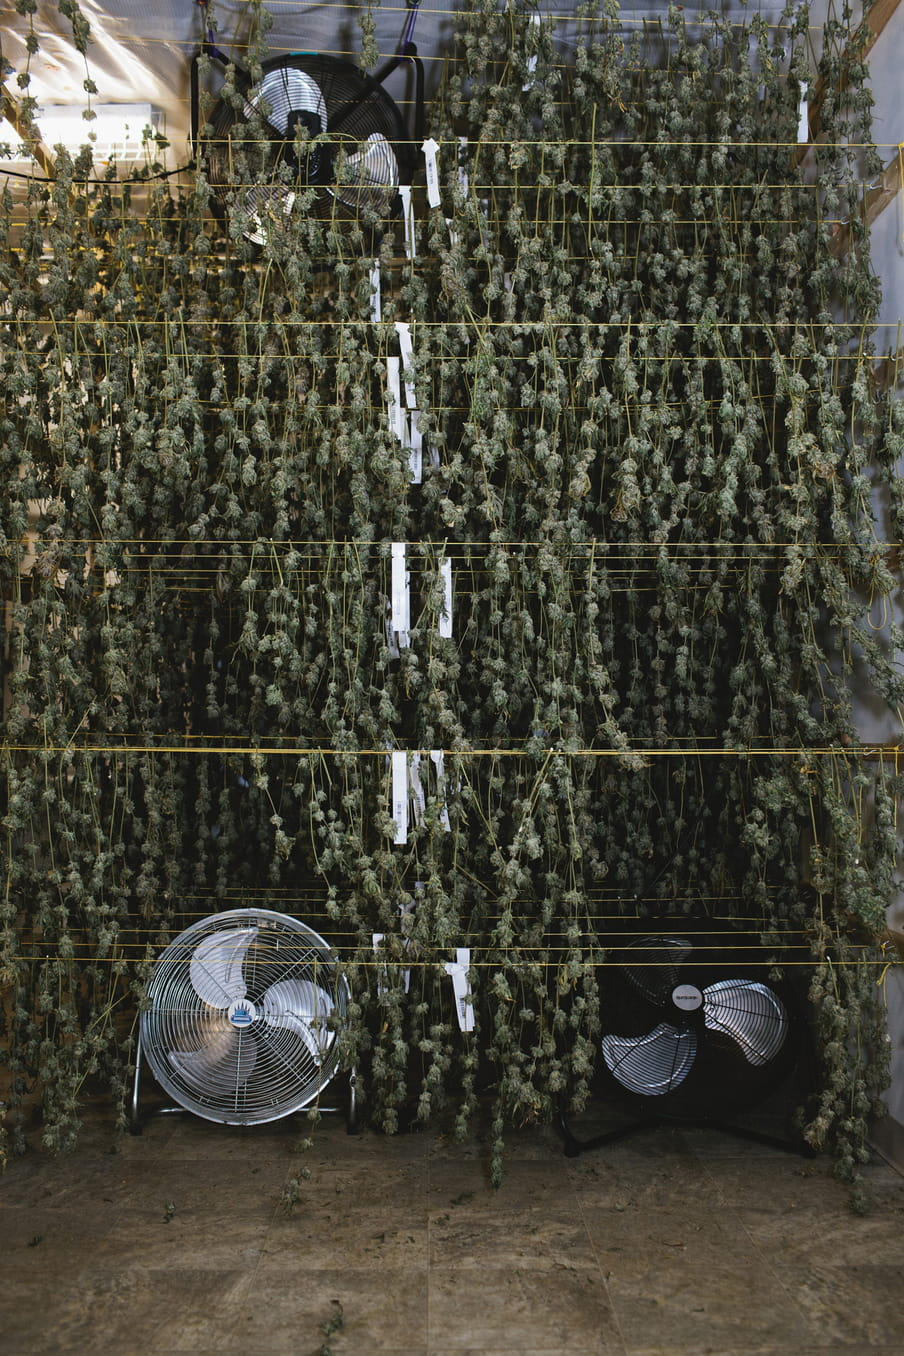 Photo of strings containing branches of cannabis hung to dry, with fans placed above and below.